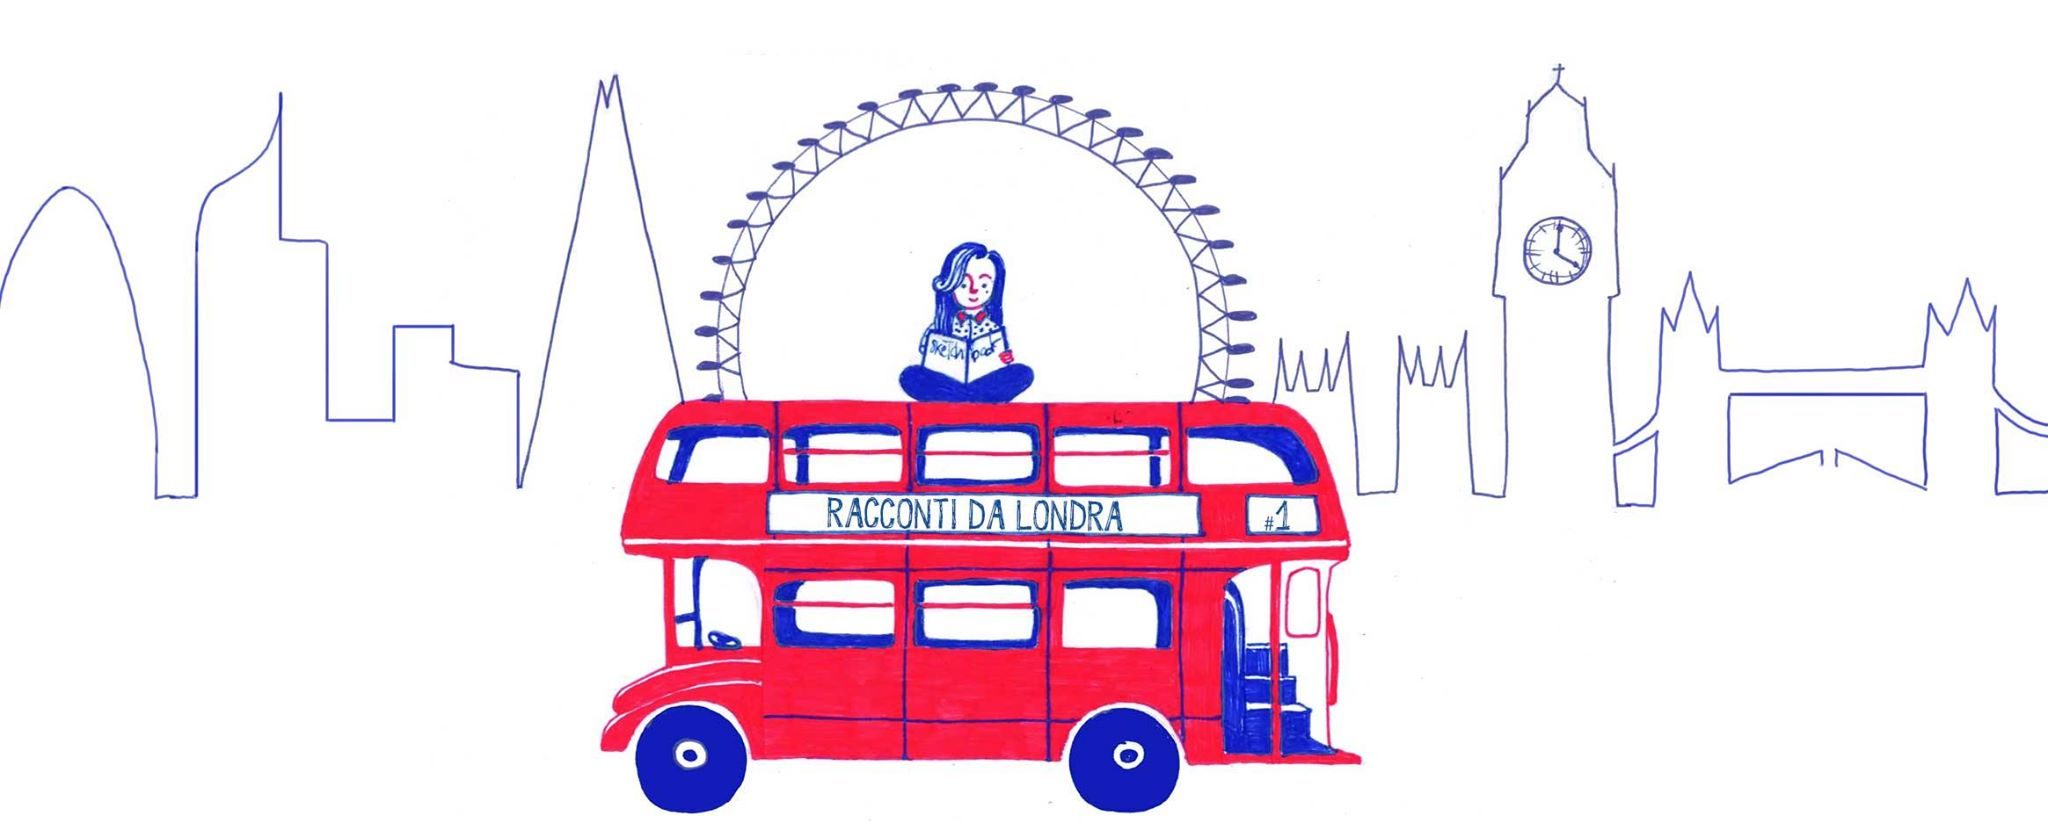 #Racconti da Londra: House of Illustration